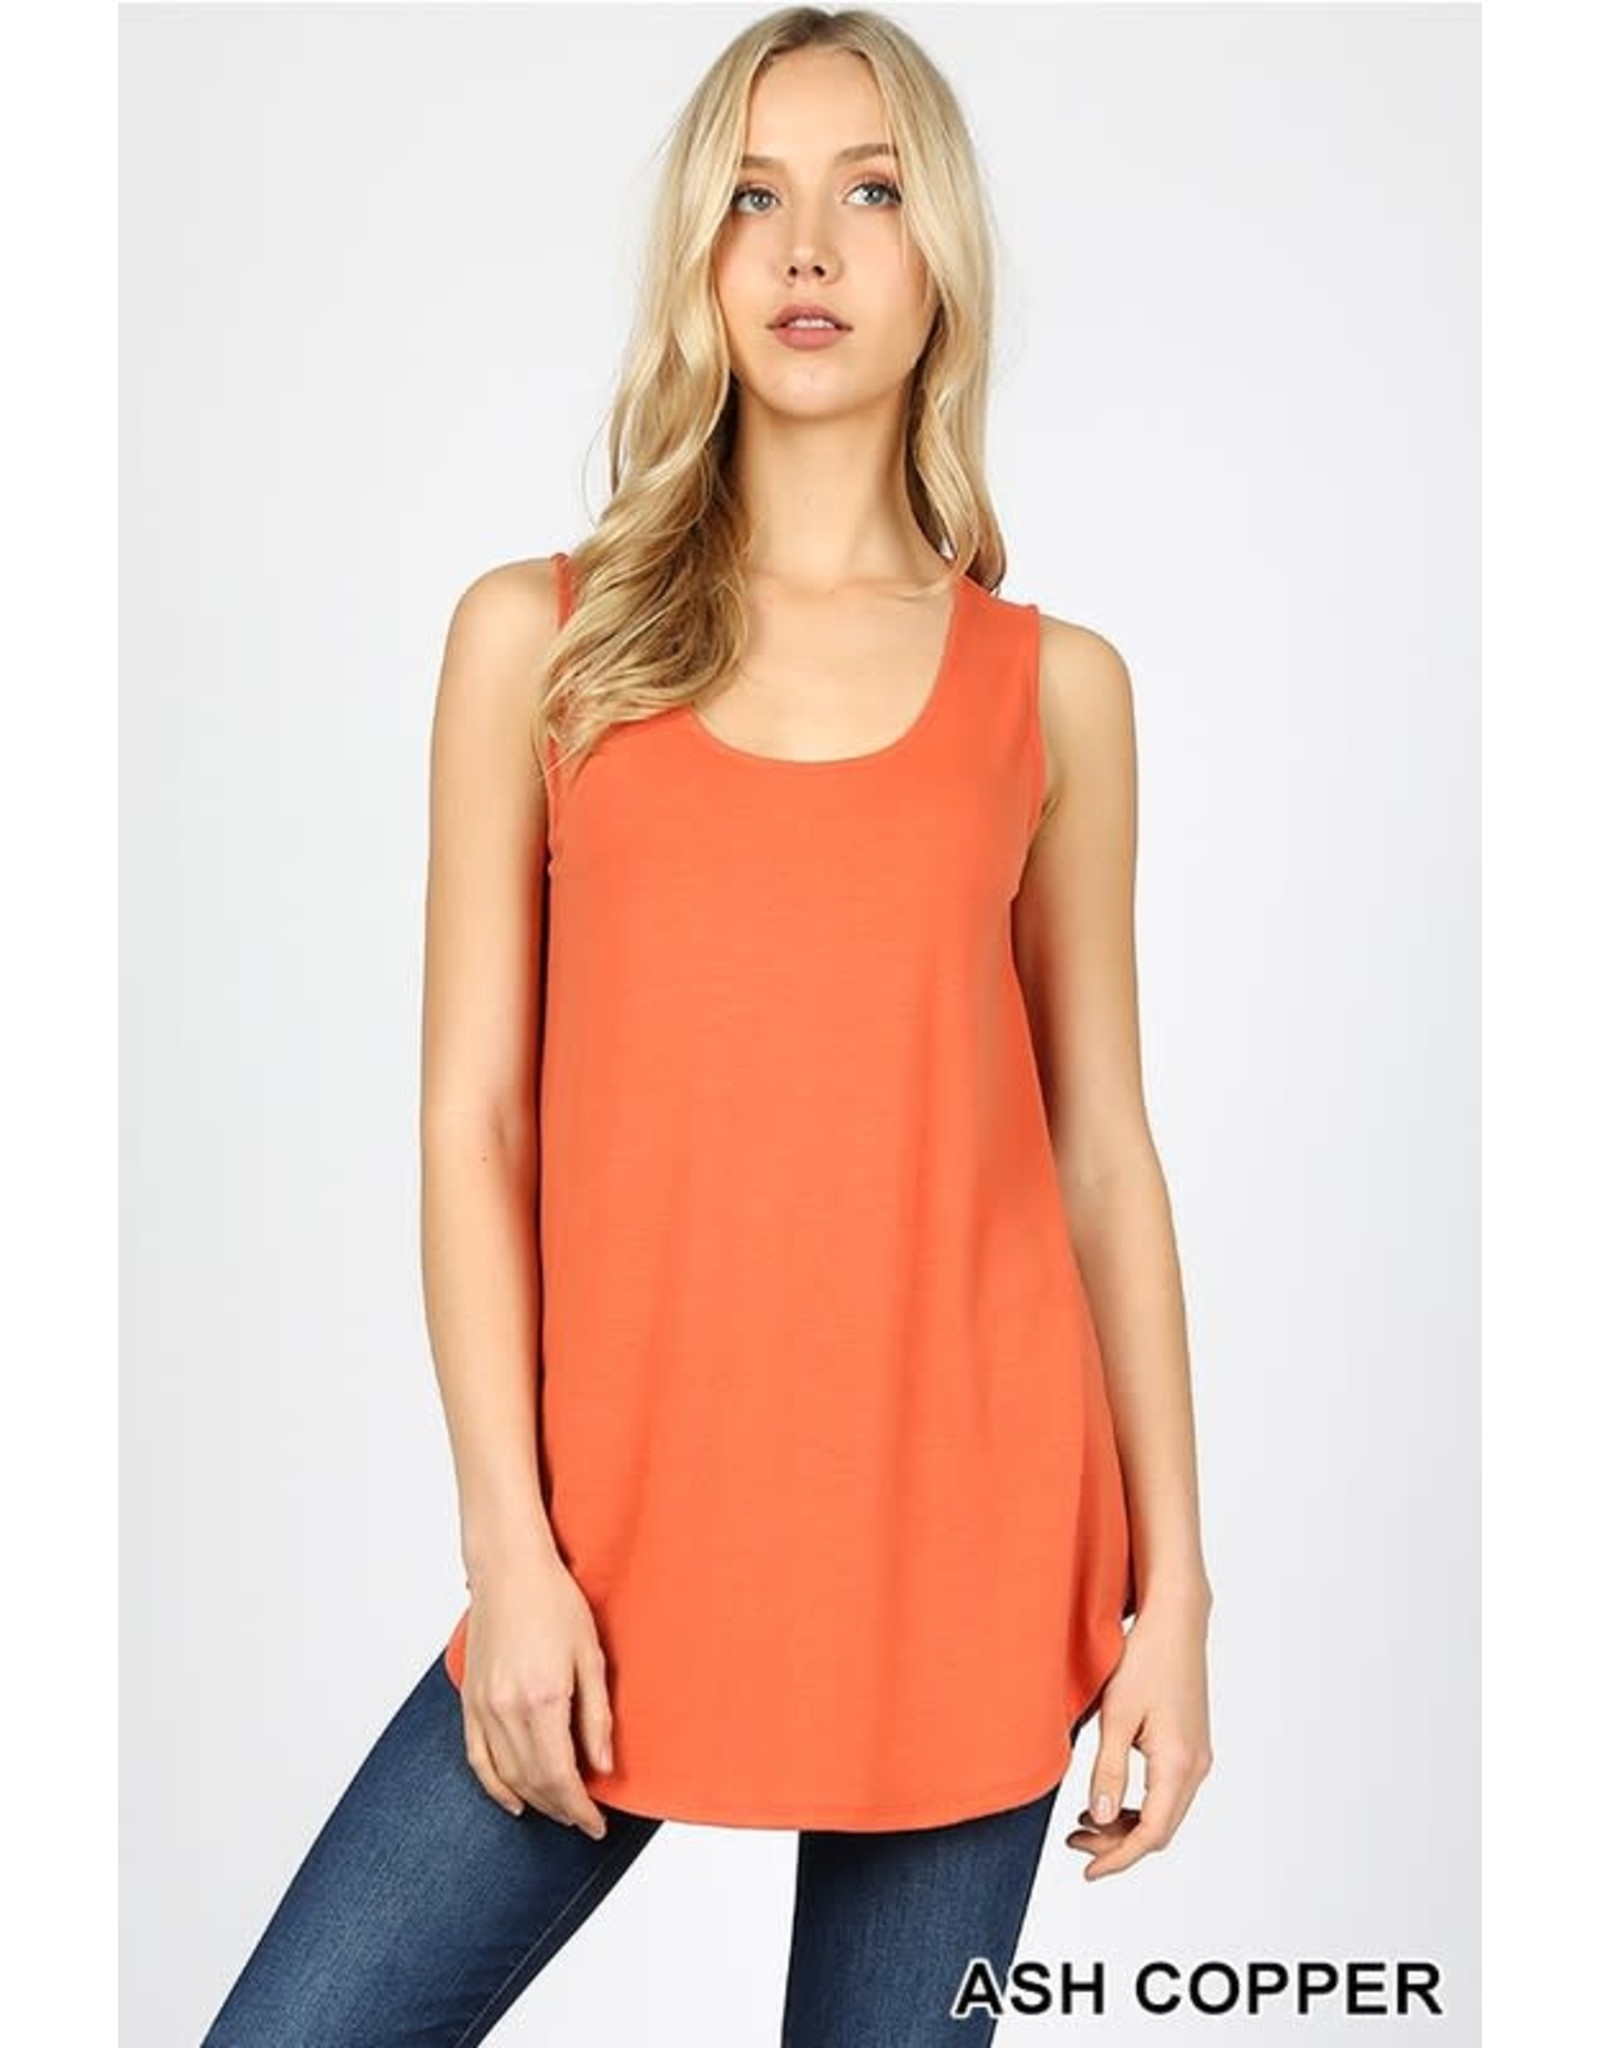 ASH COPPER BASIC SOLID COLOR SLEEVELESS TANK